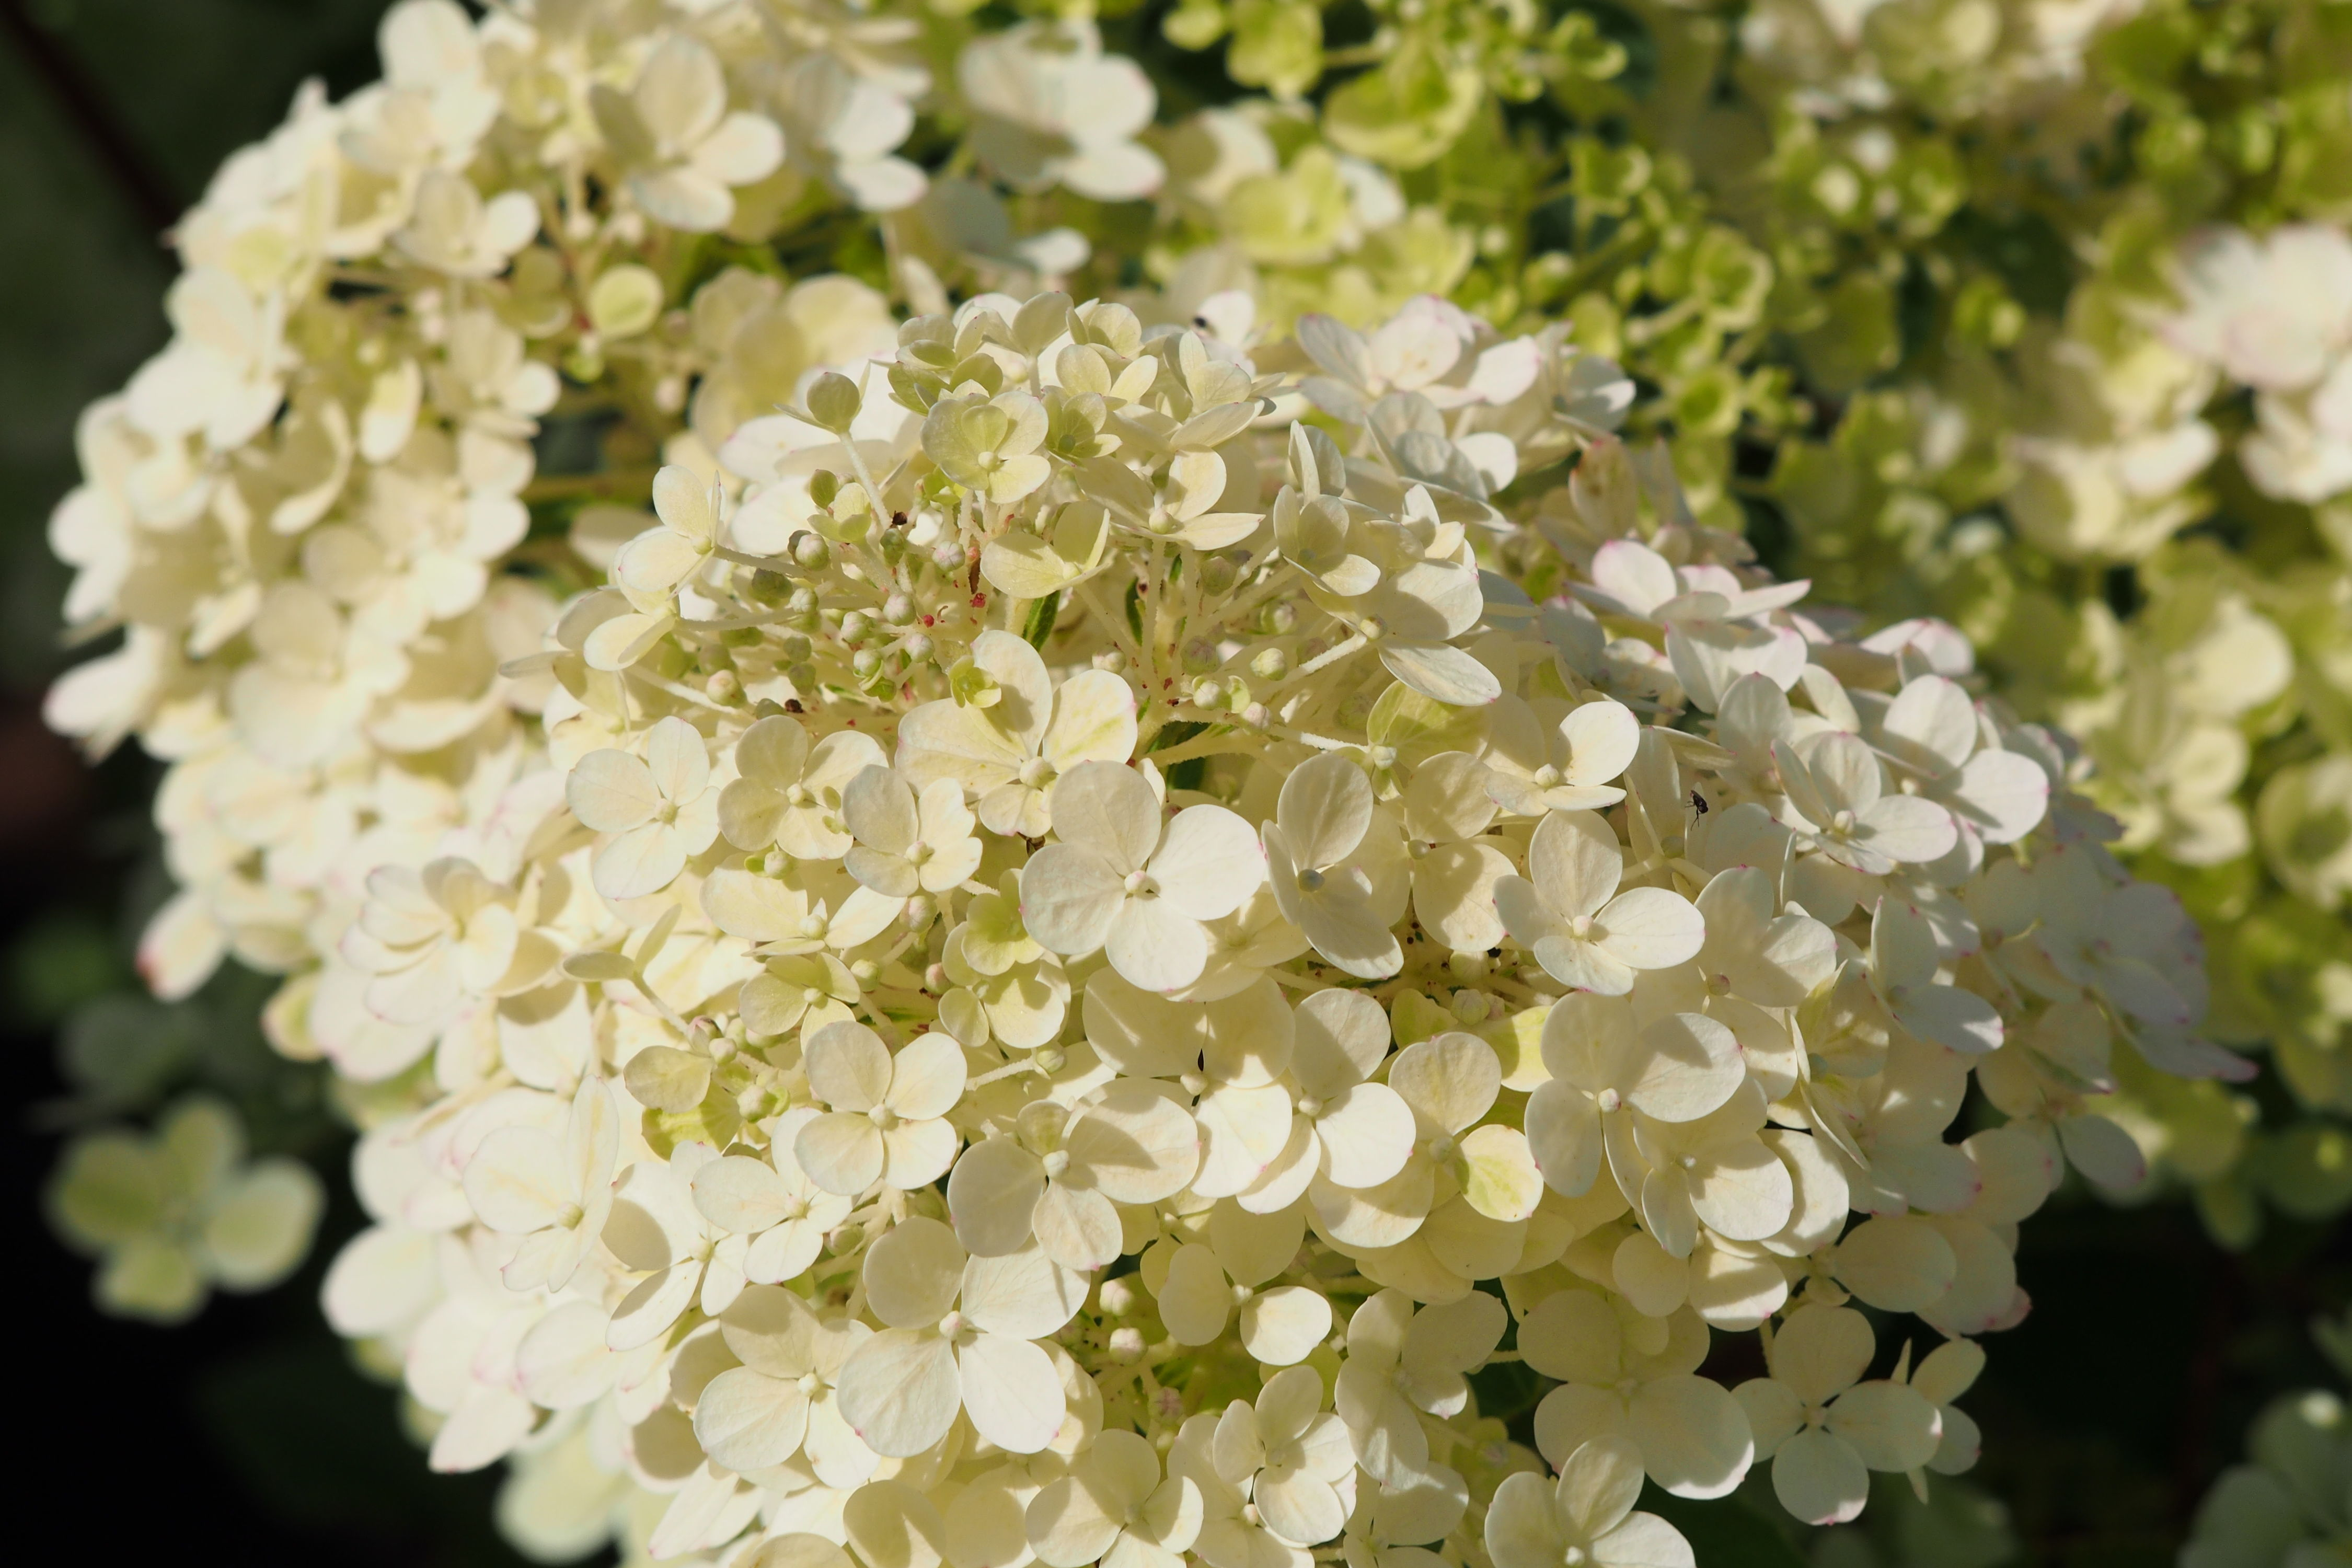 This Hydrangea's Lush Blooms Turn From White to Pink